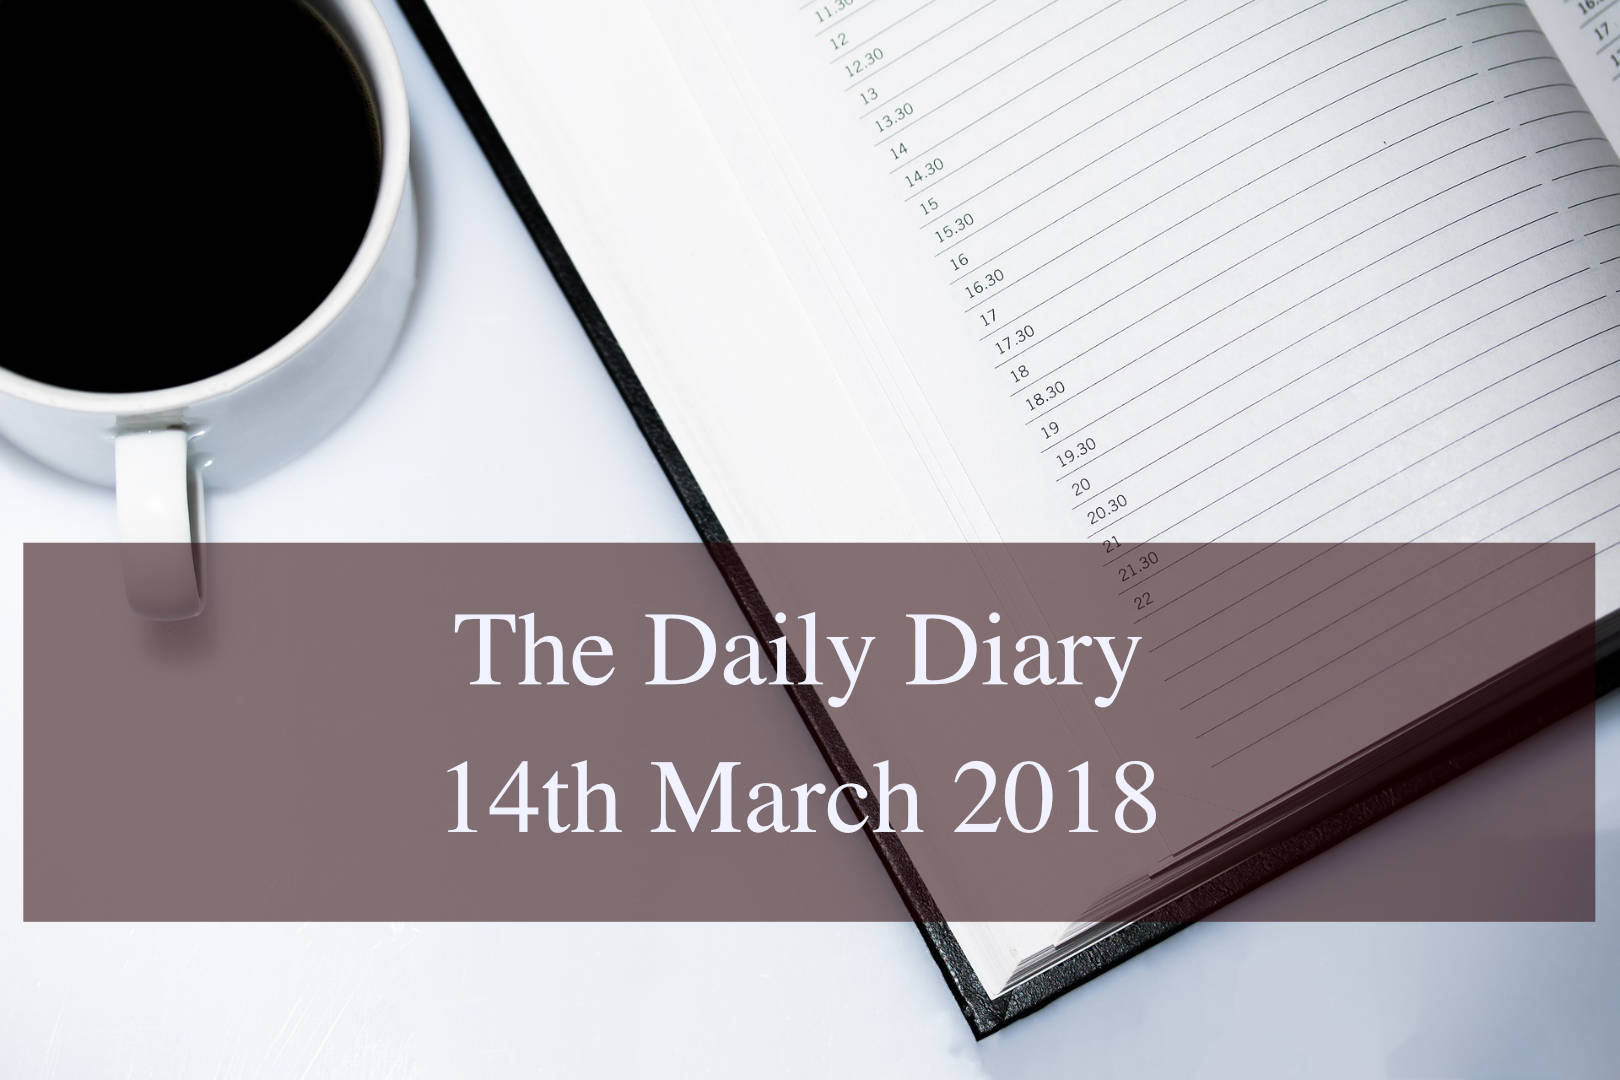 Daily Diary – 14th March 2018